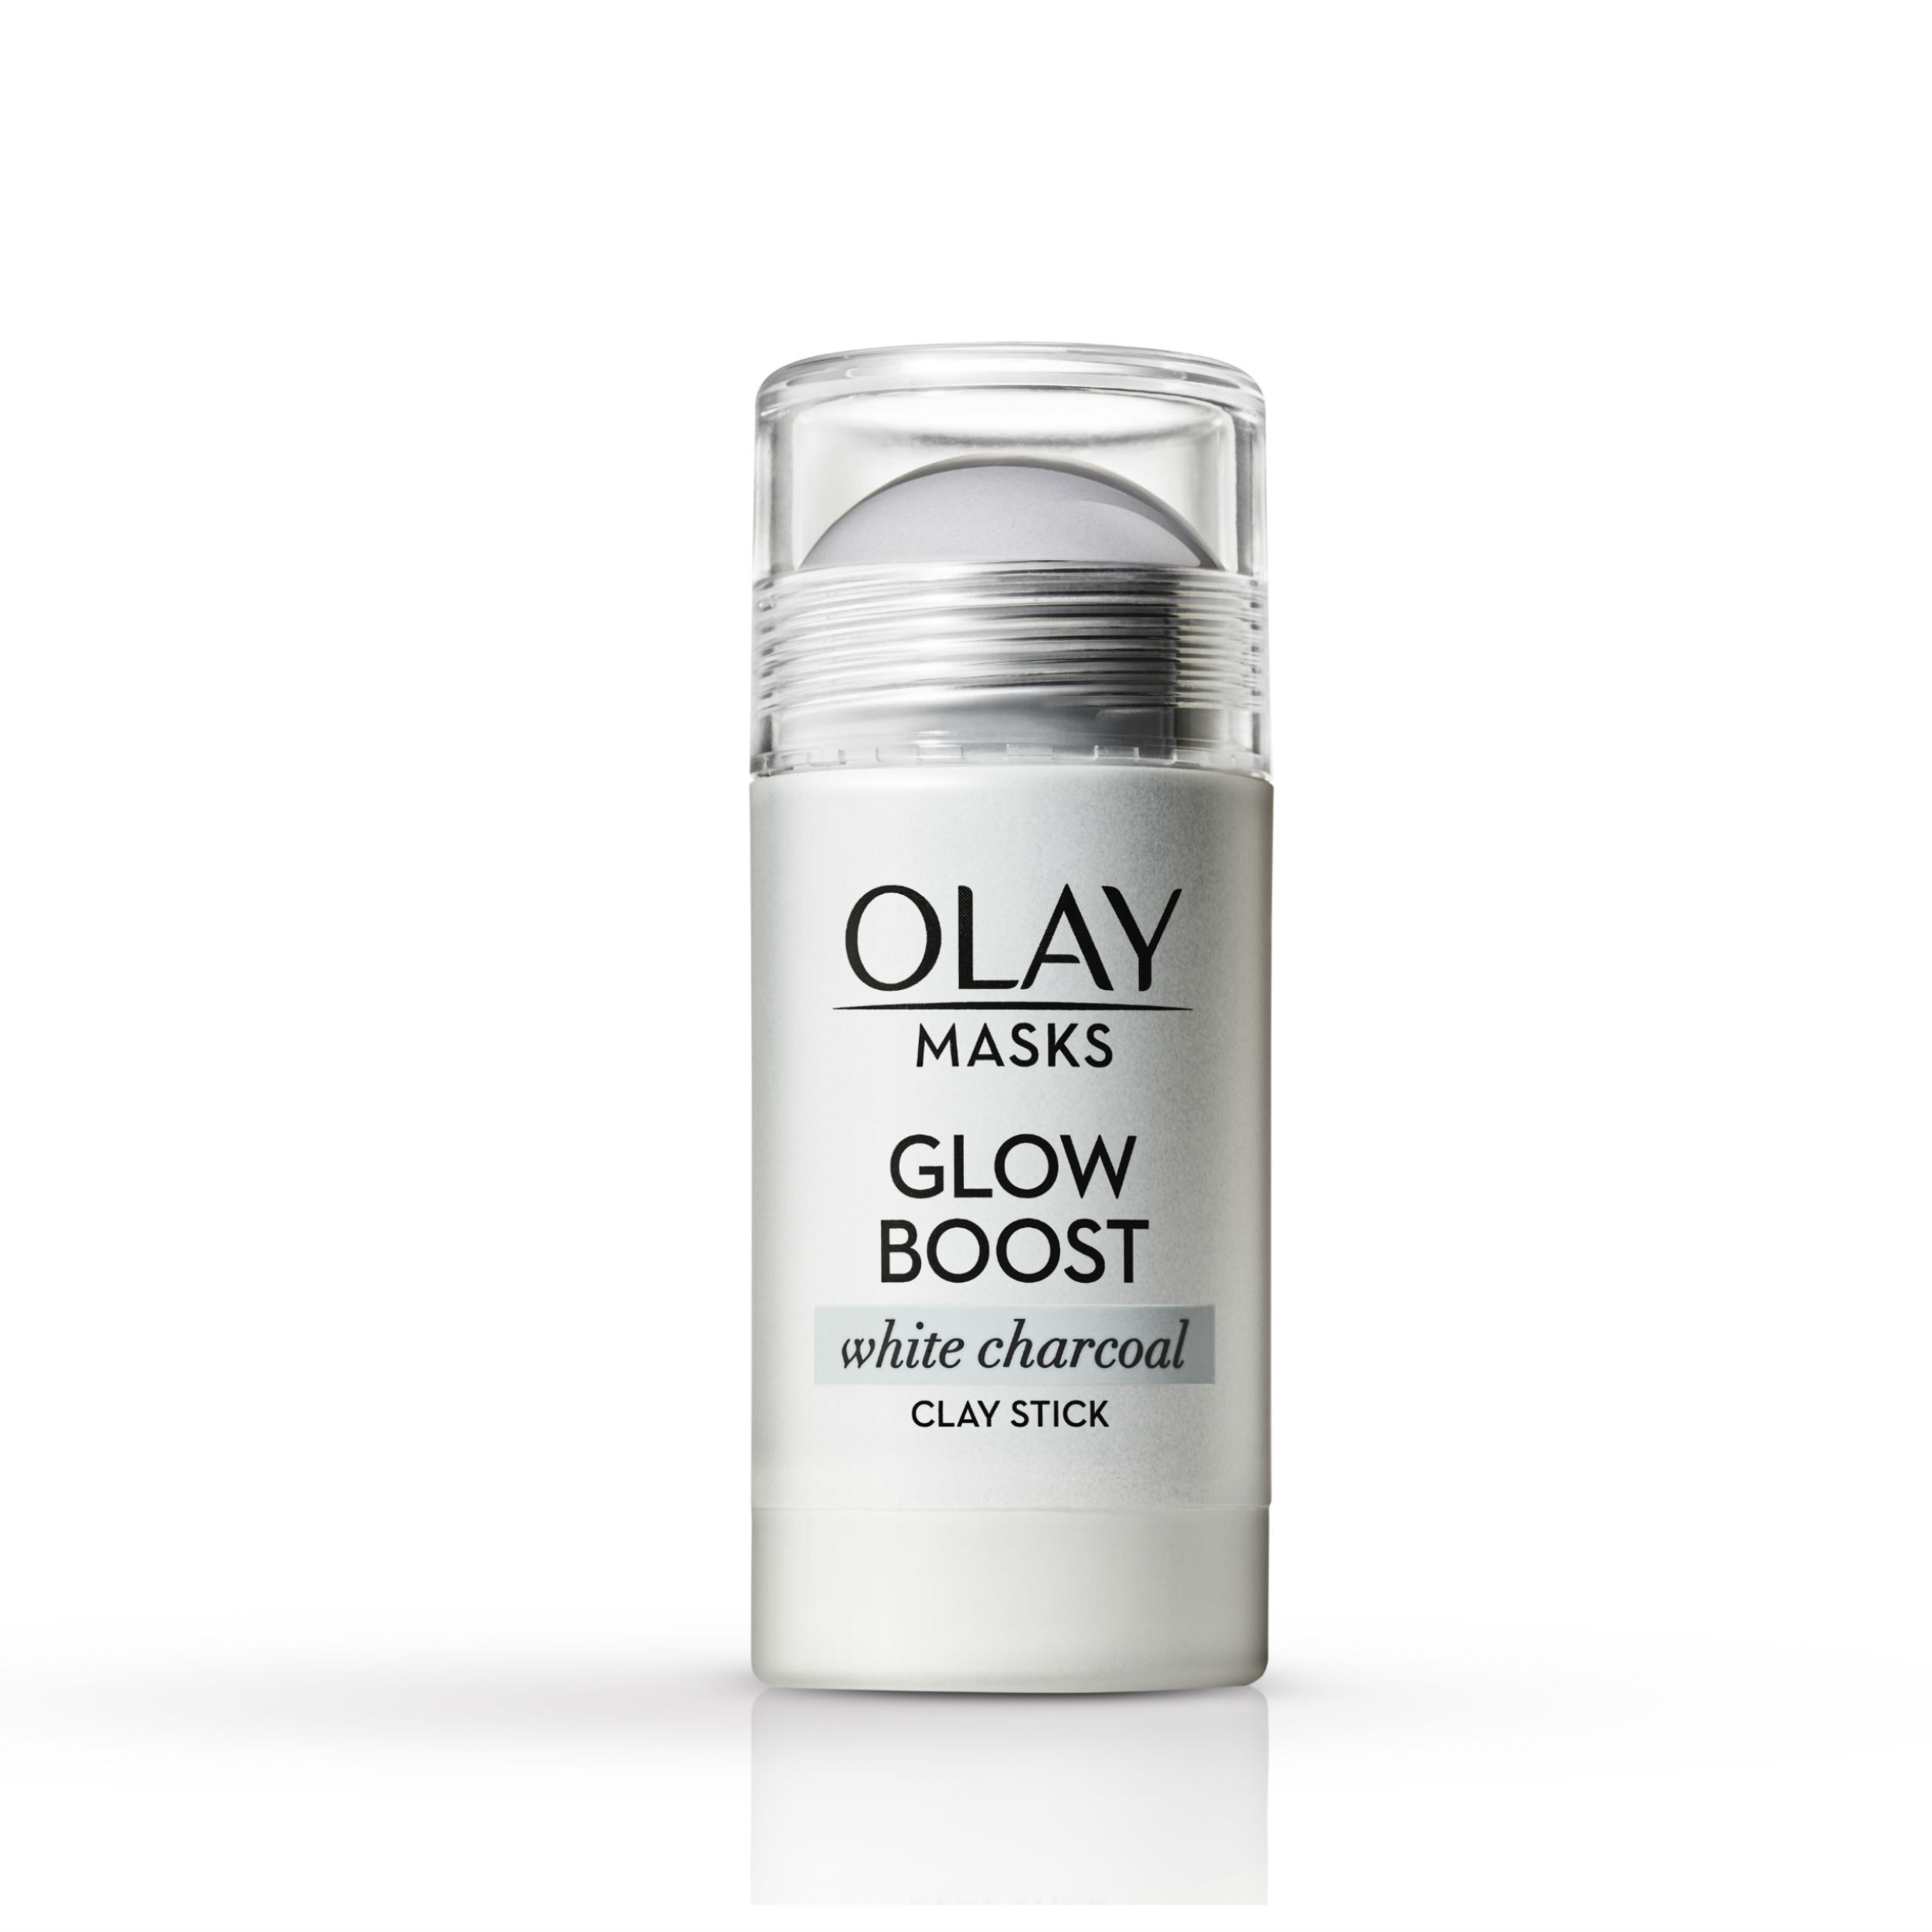 Olay Glow Boost White Charcoal Clay Face Mask Stick 1 7 oz  - Walmart com